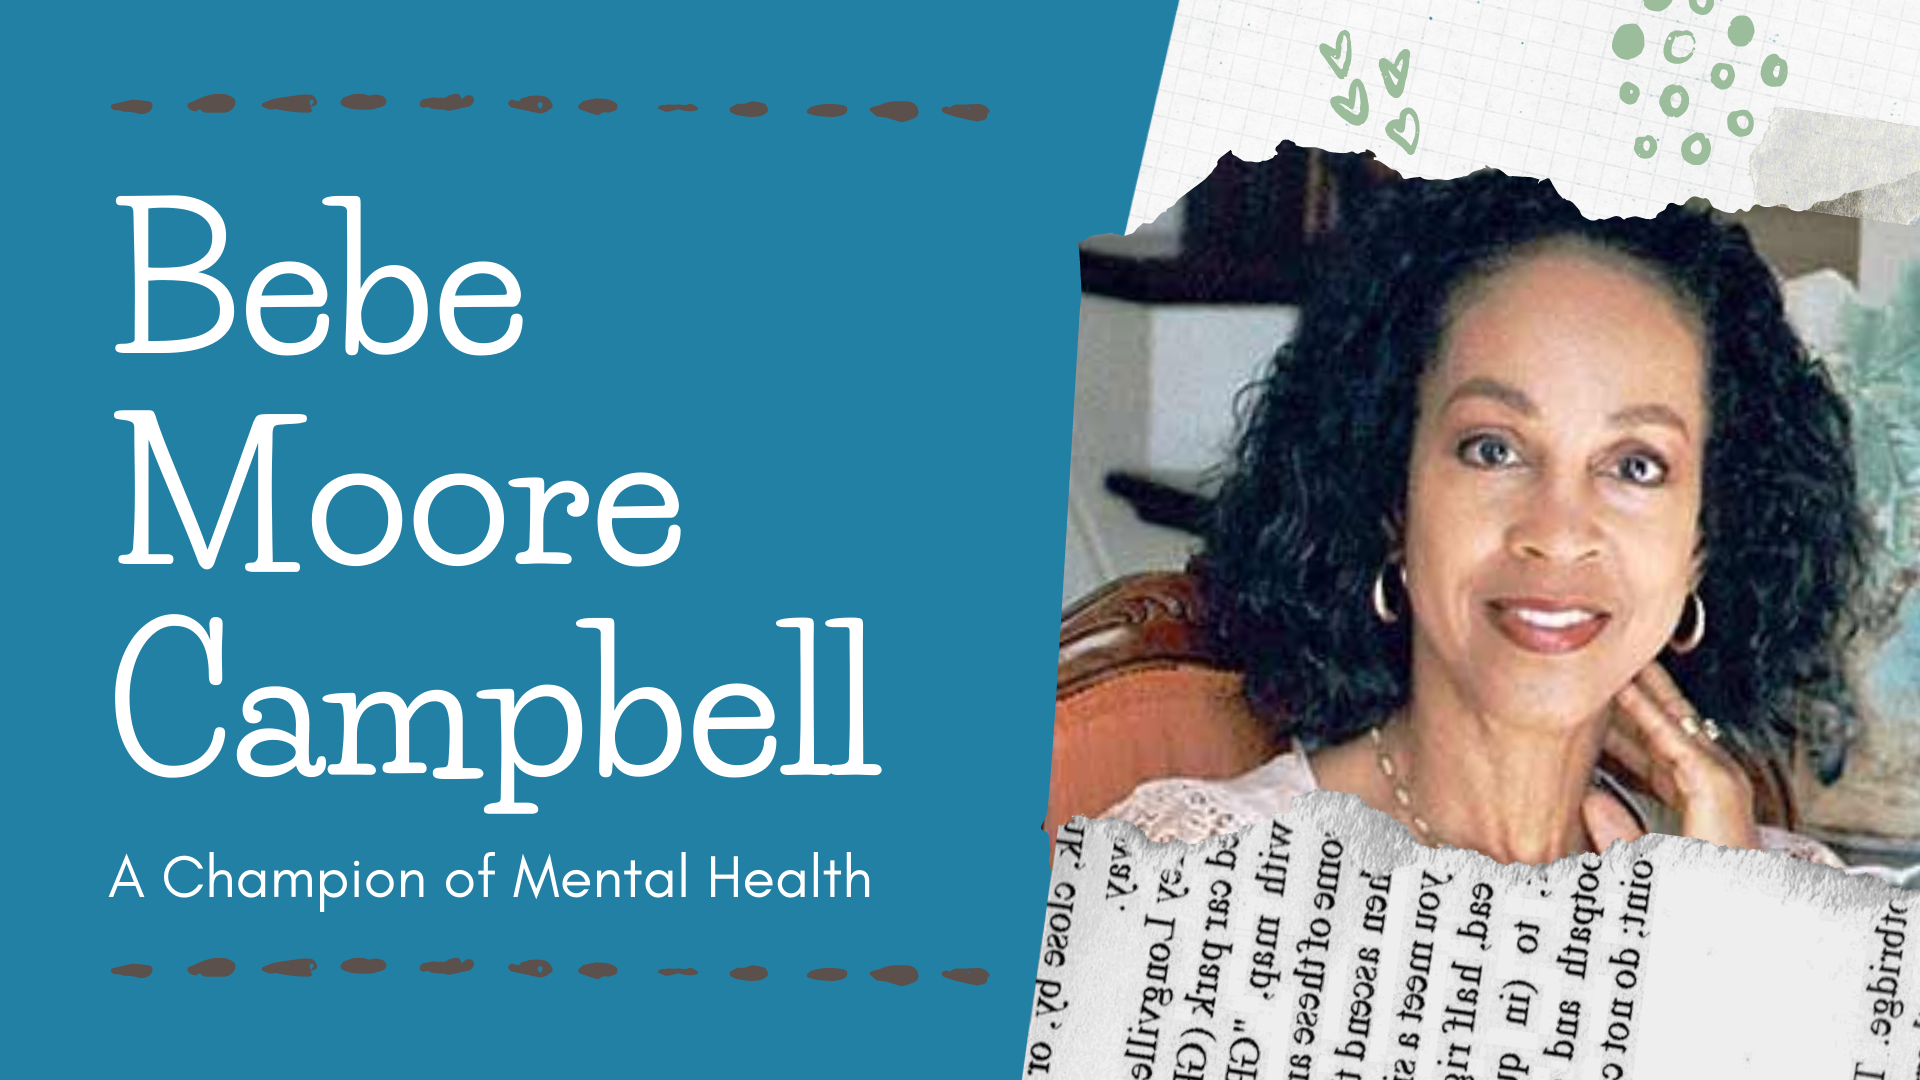 Bebe Moore – a Champion of Mental Health